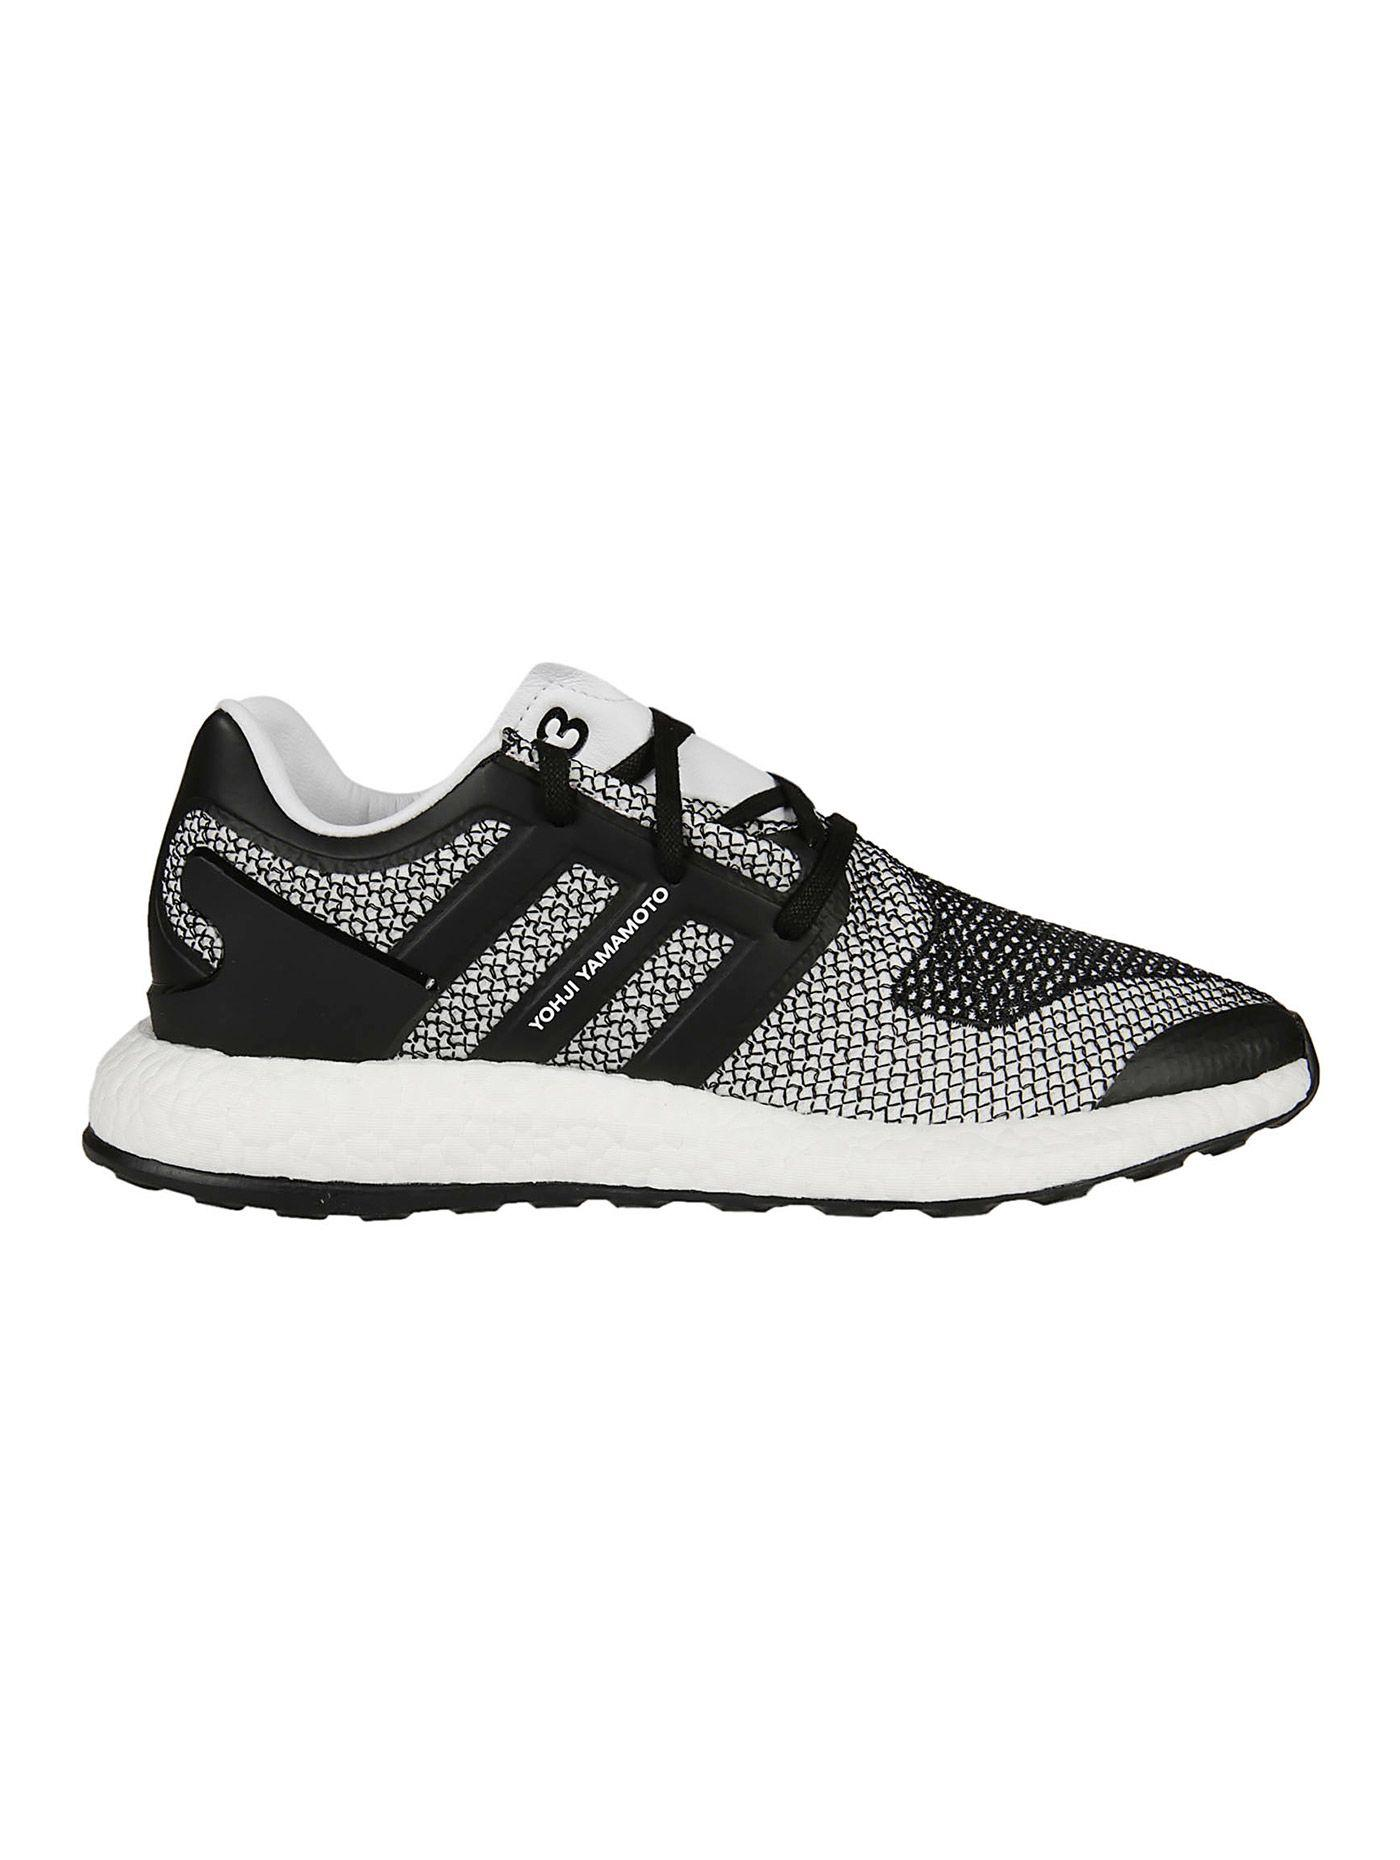 a2a7b6b2e PUREBOOST SNEAKERS. Pureboost Sneakers from Y-3  White-Black ...